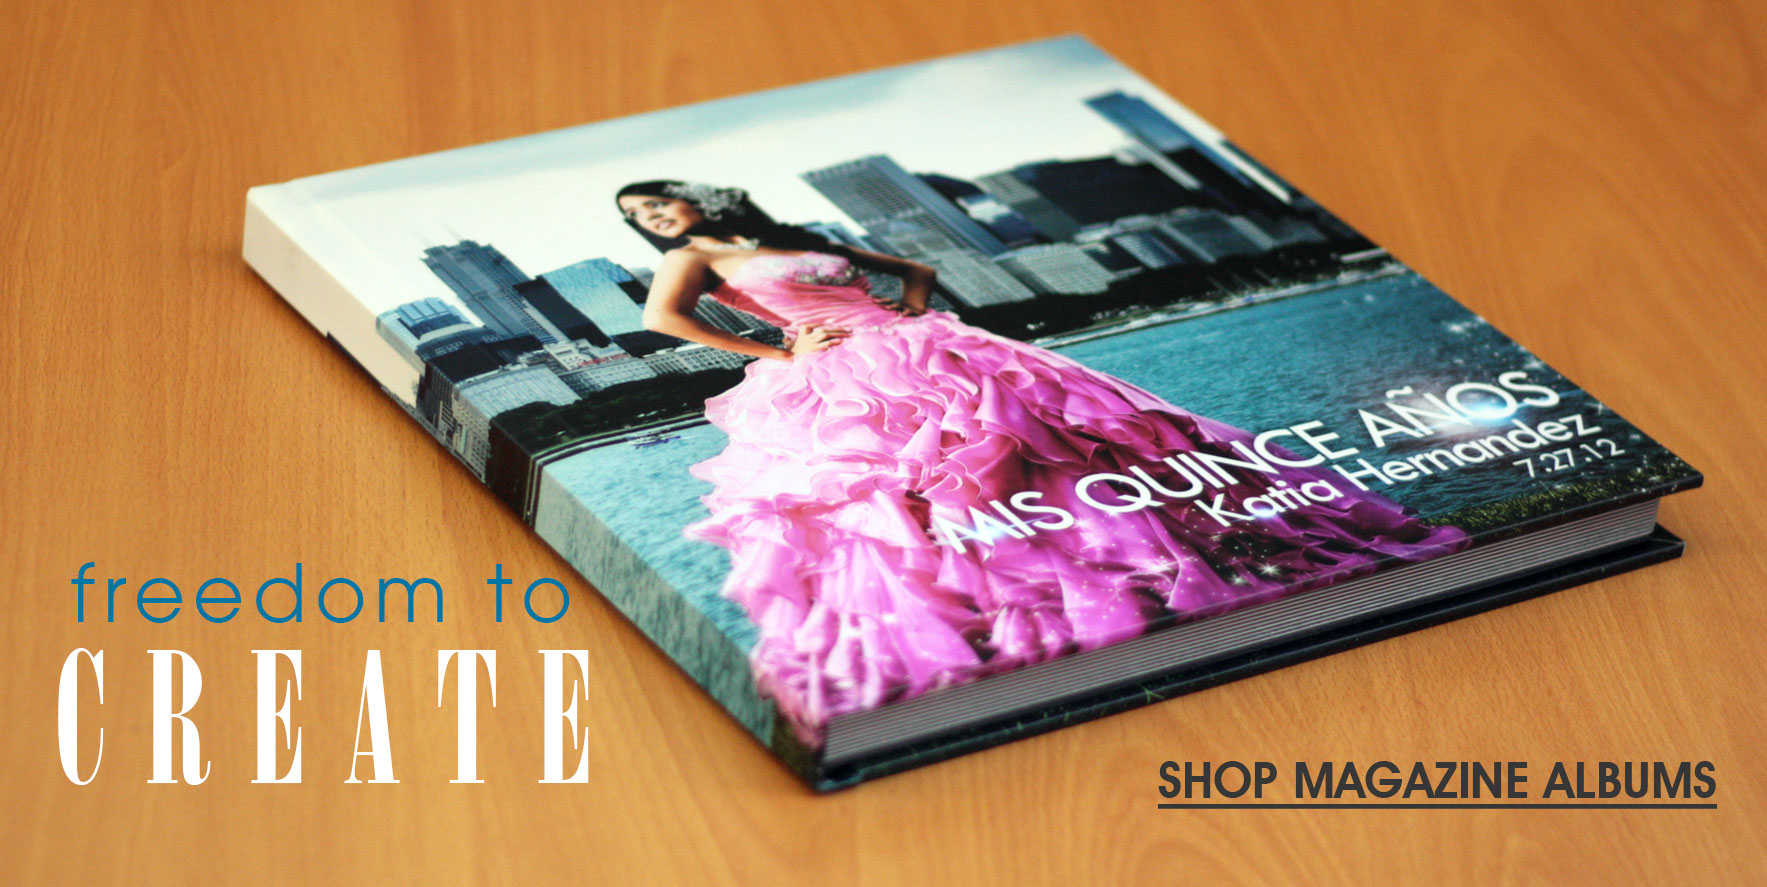 Freedom to Create - Click to Shop Magazine Photo Albums